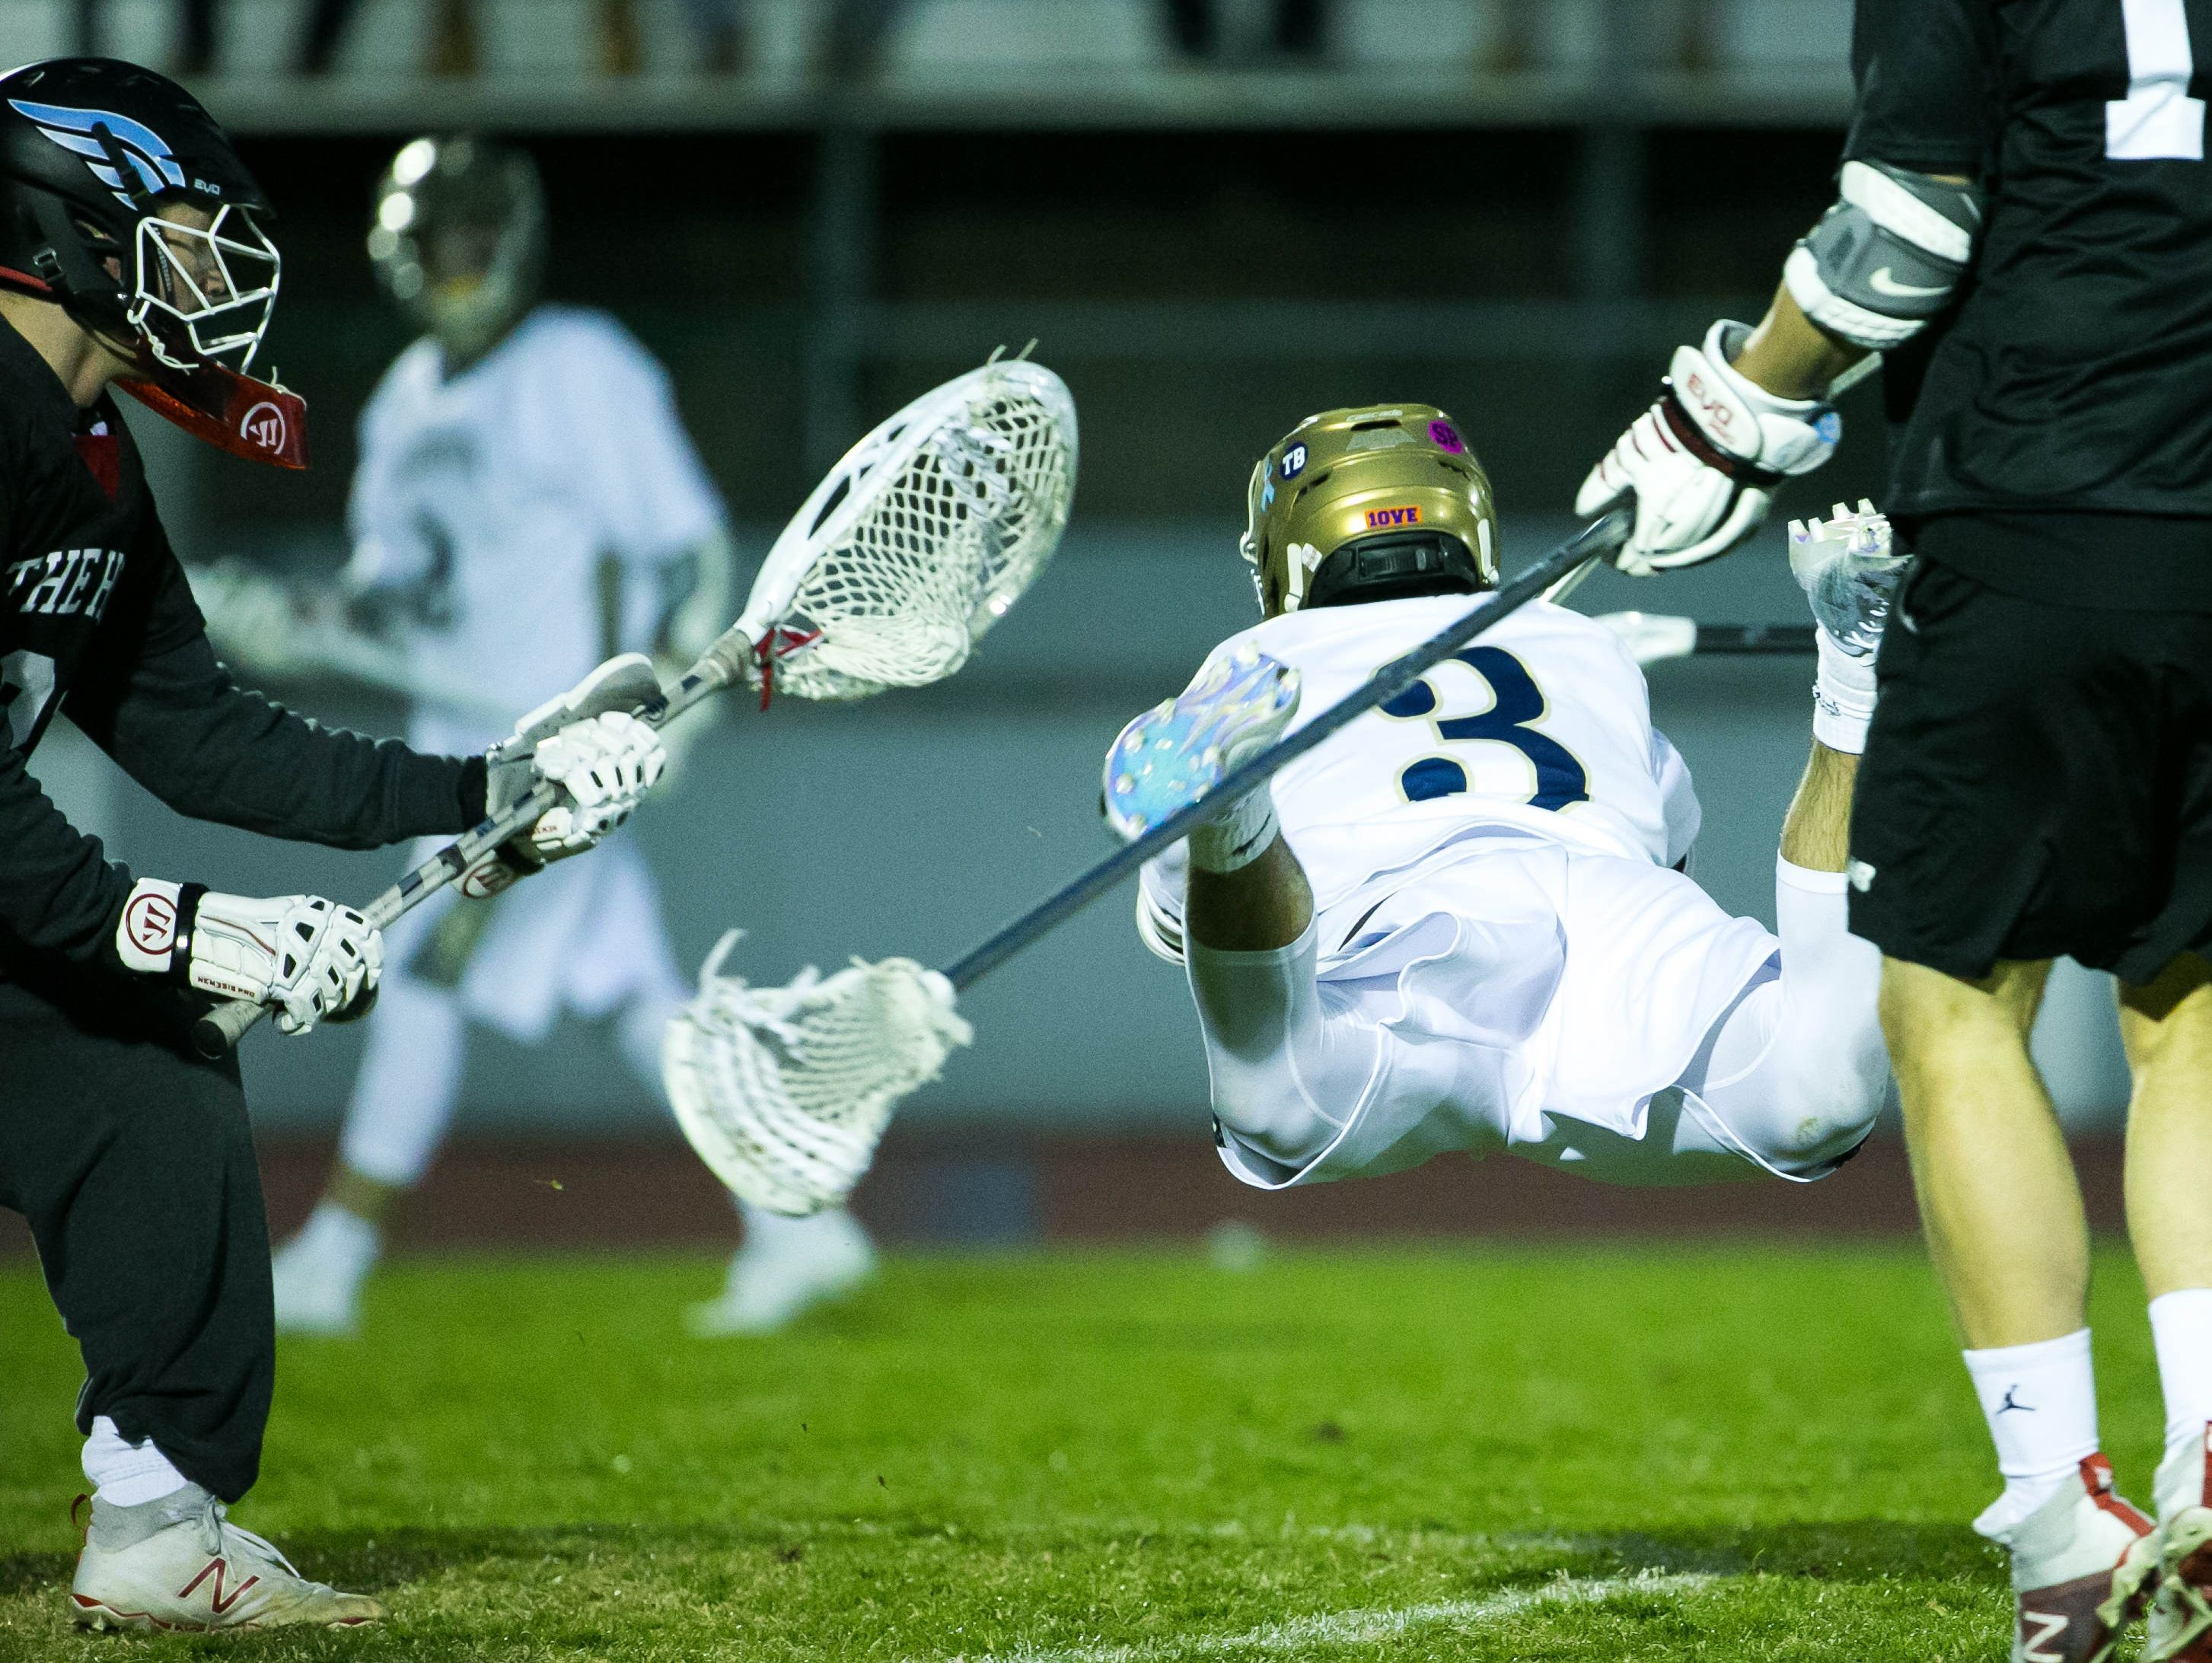 Michael Drake of Salesianum dives for the ball which flies by.